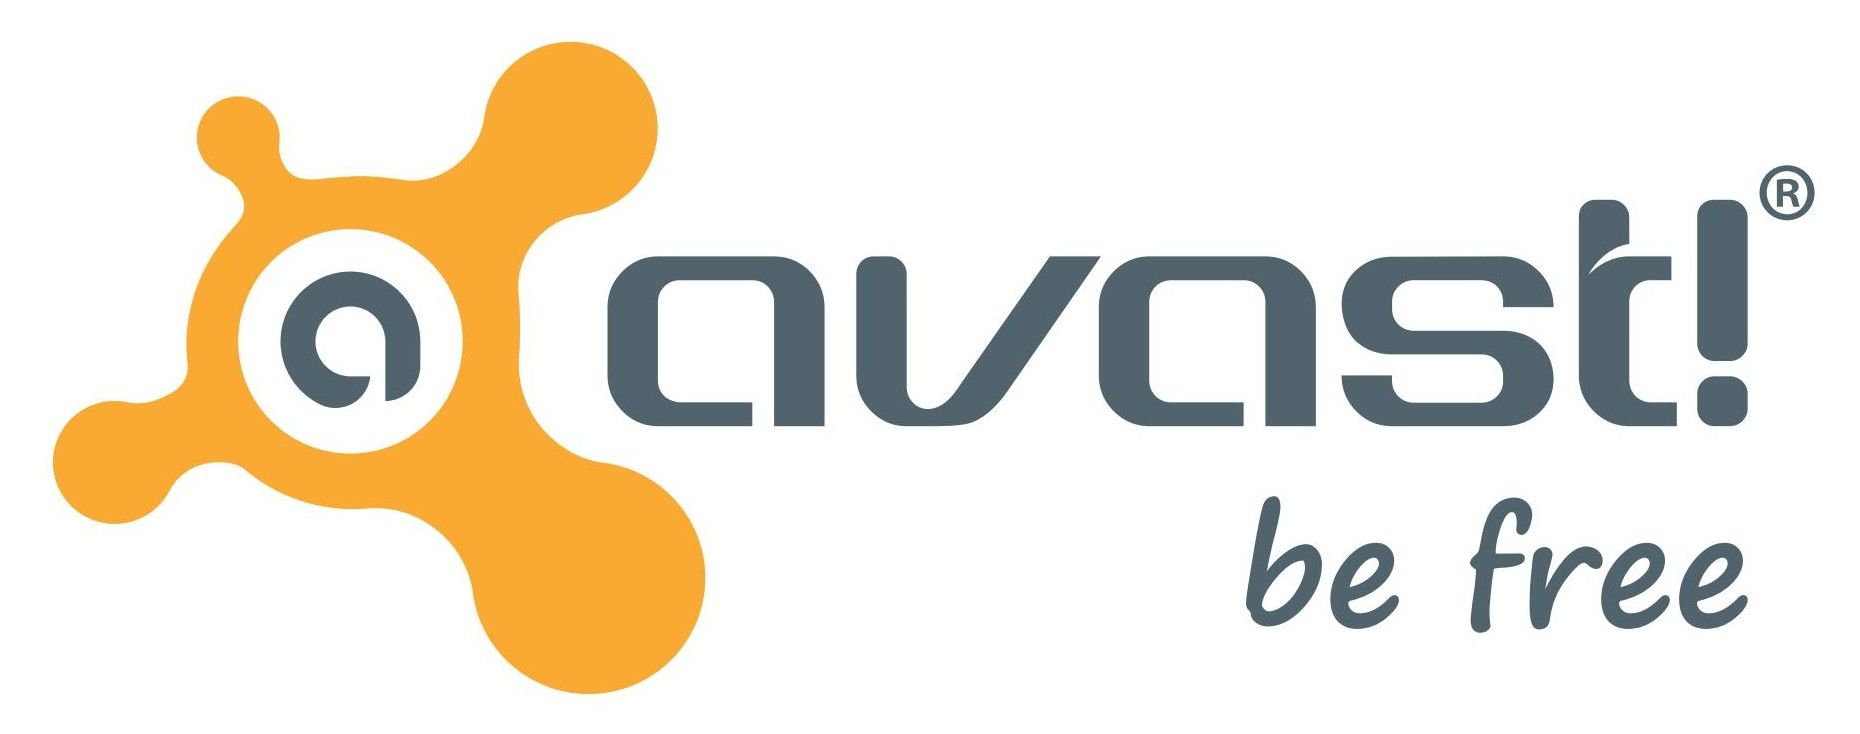 AVAST Software Logo [EPS File] Vector EPS Free Download, Logo, Icons, Brand Emblems